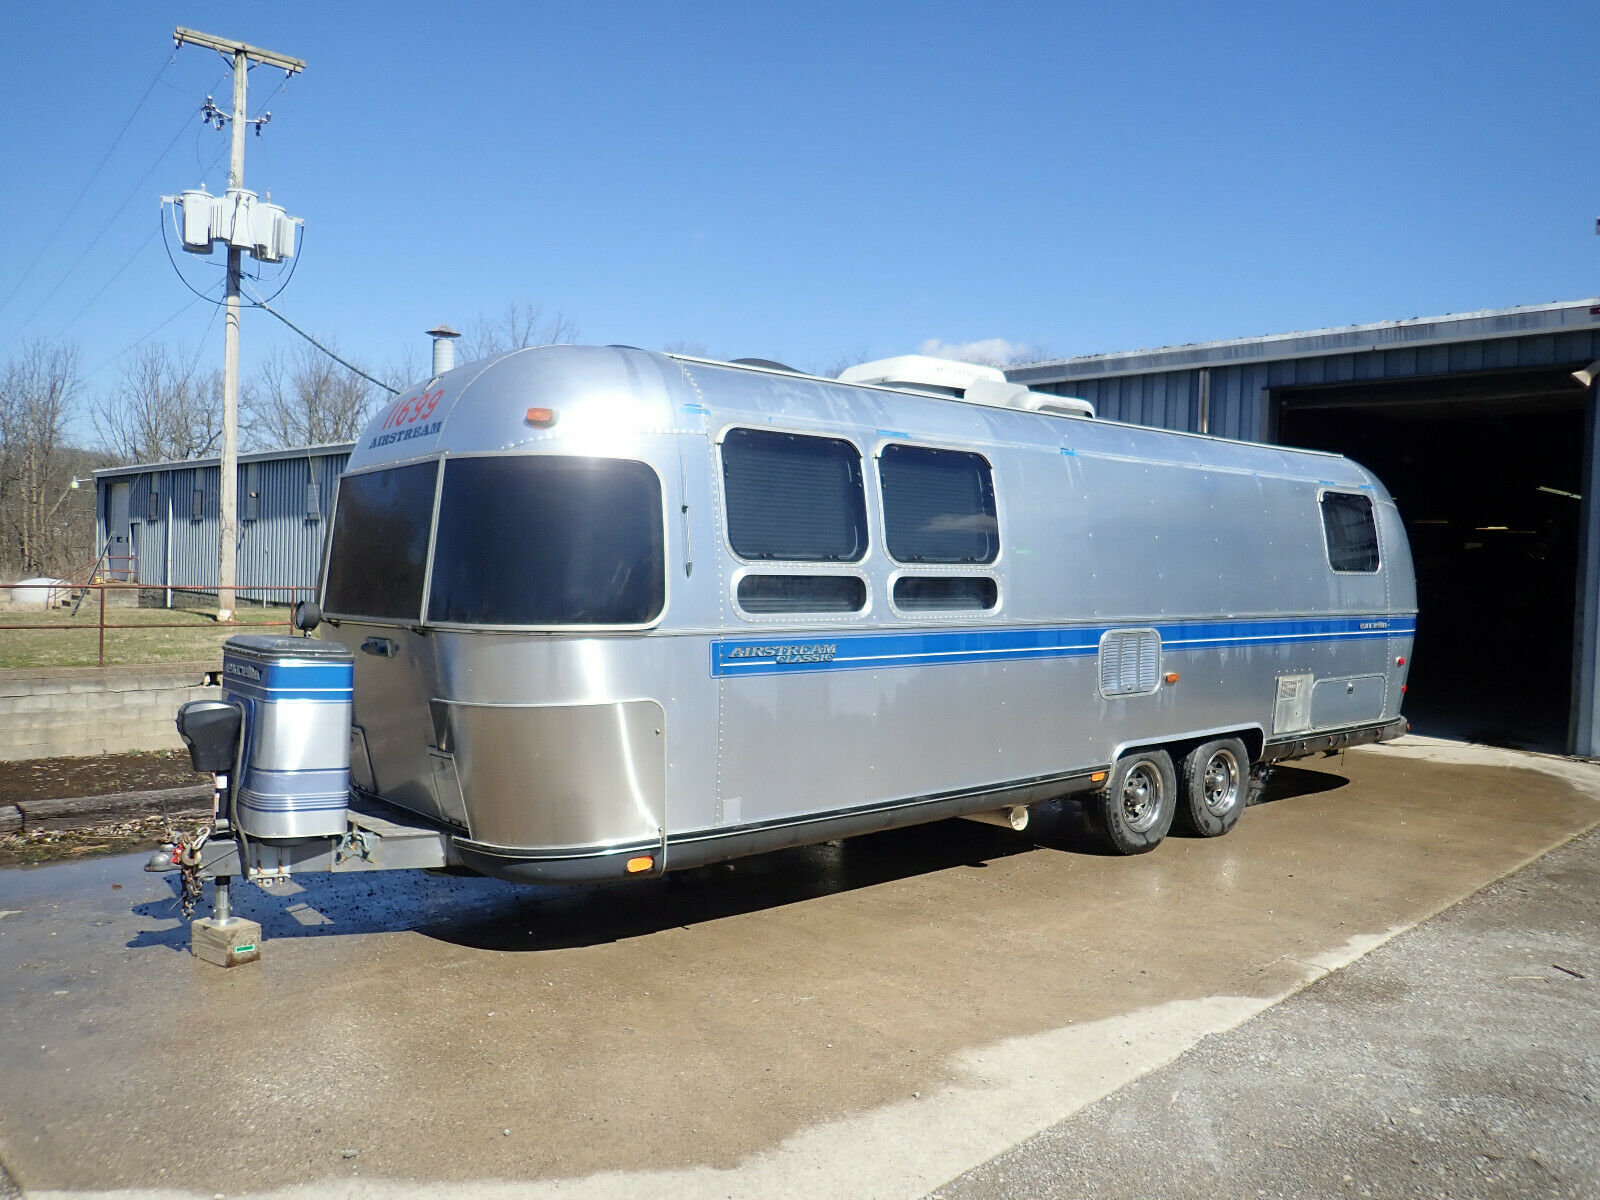 ready for camping 1994 Airstream Excella camper for sale